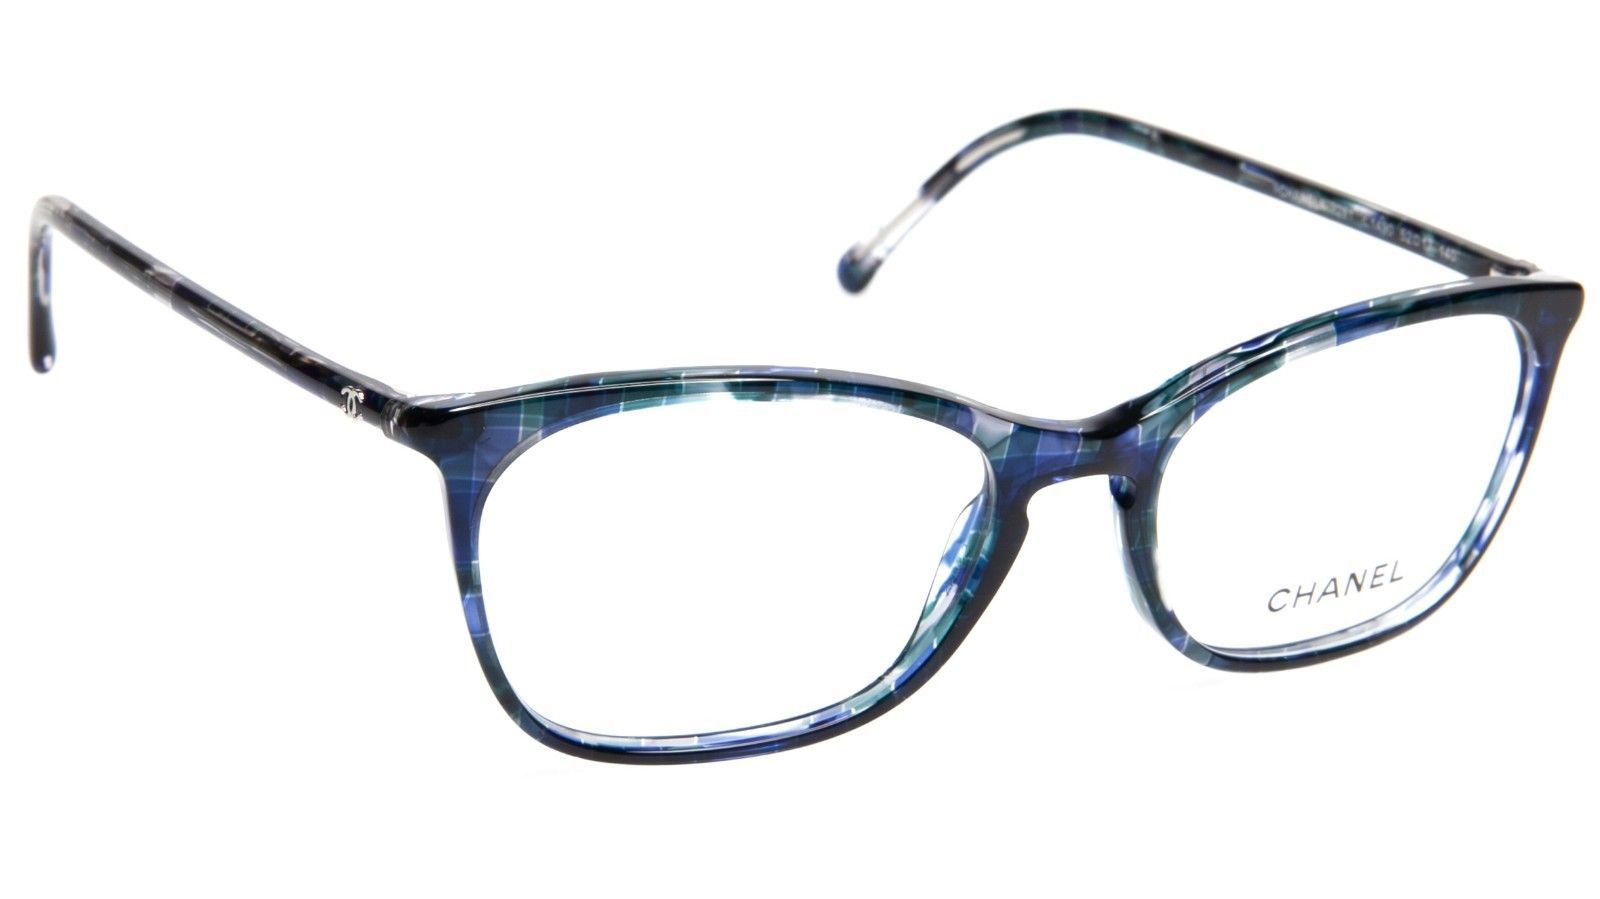 5c341cee80 New Chanel 3281 C. 1490 Blue Eyeglasses and 50 similar items